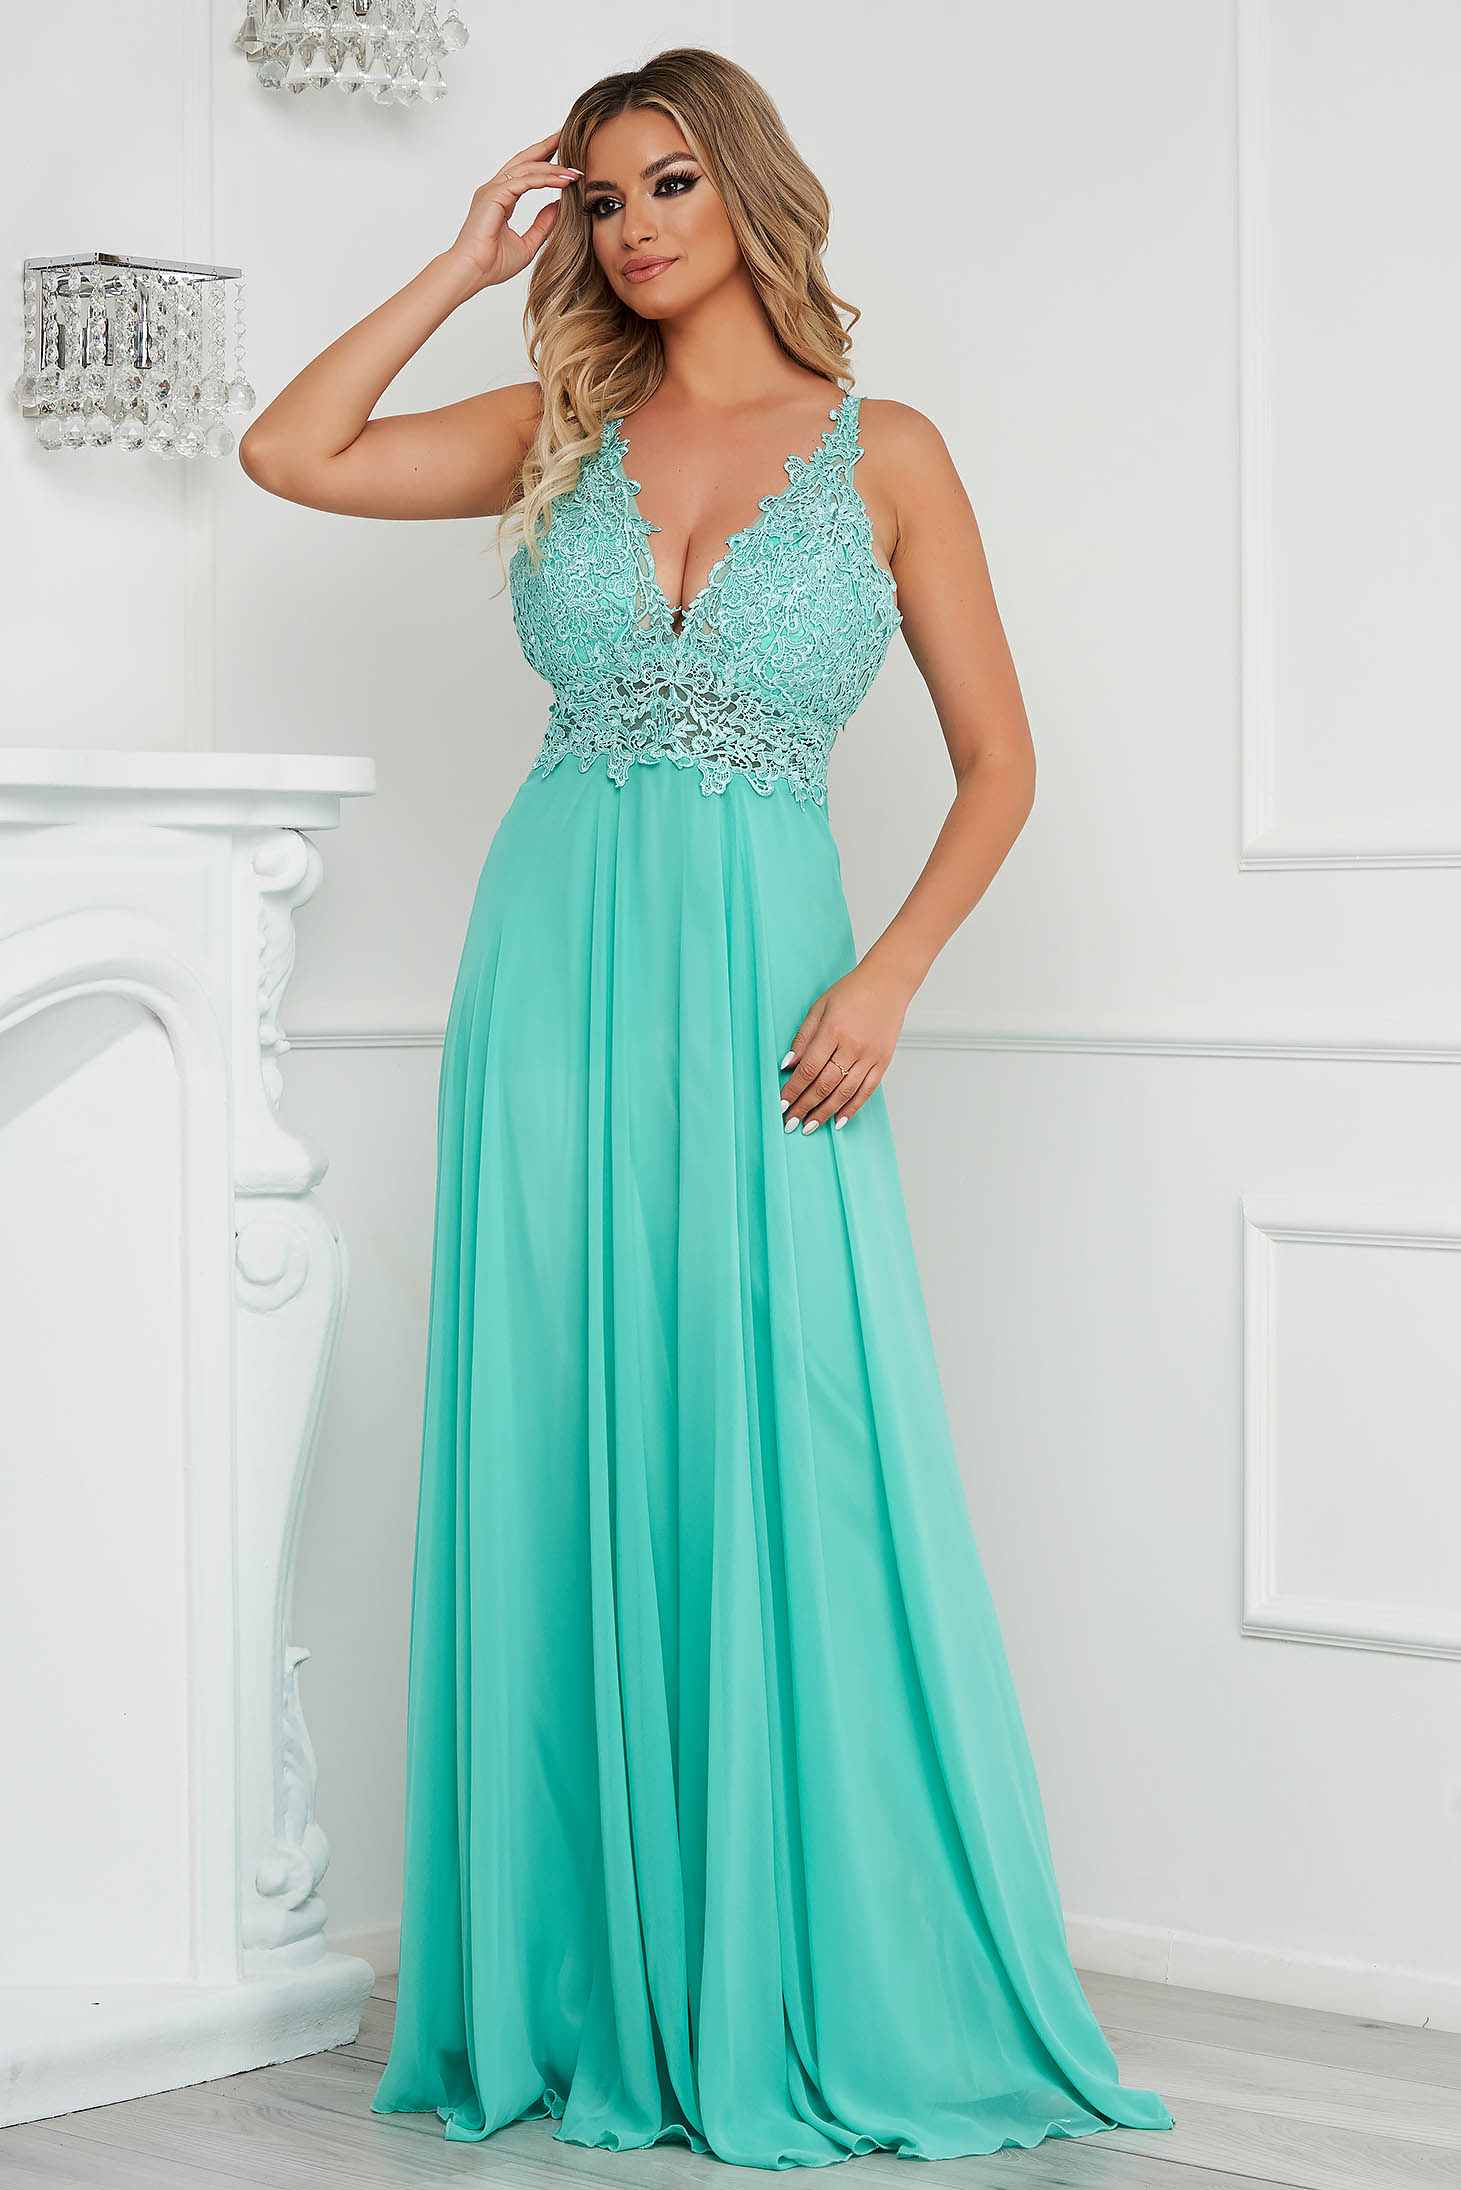 Mint dress long occasional from veil fabric bare back with push-up cups